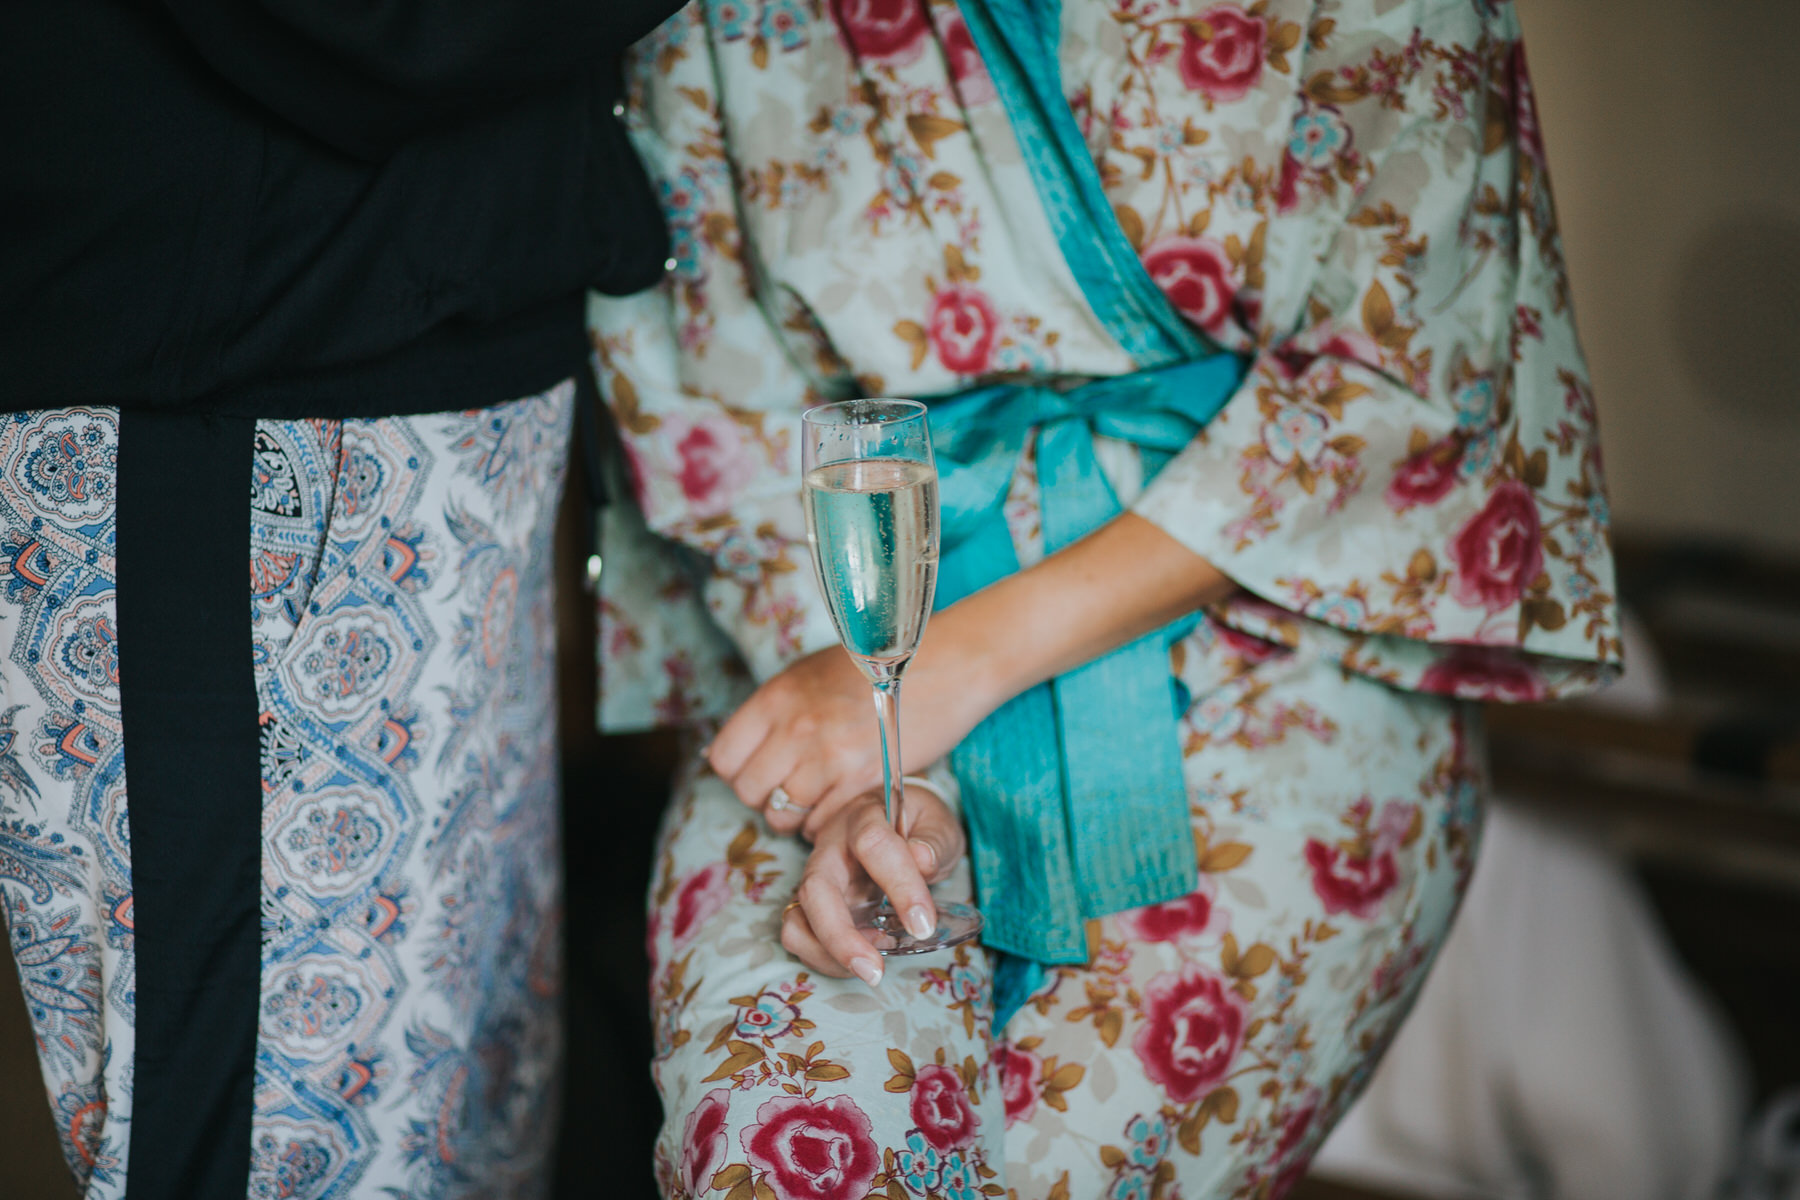 47 bride holding champagne glass kimono dressing gown  Yolande De Vries Photography.jpg